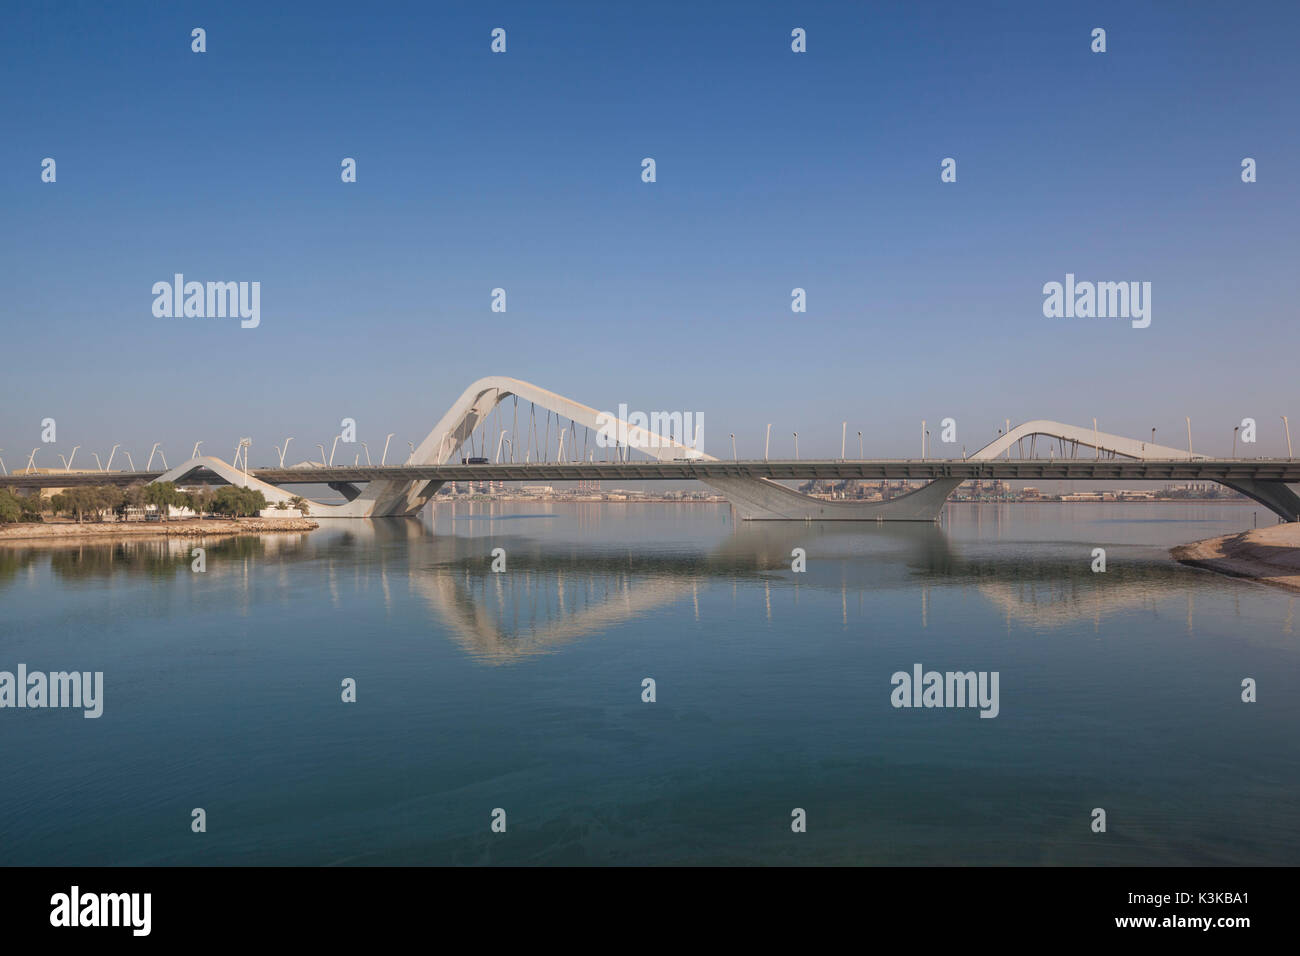 UAE, Abu Dhabi, Sheikh Zayed Bridge, designed by Zaha Hadid Stock Photo